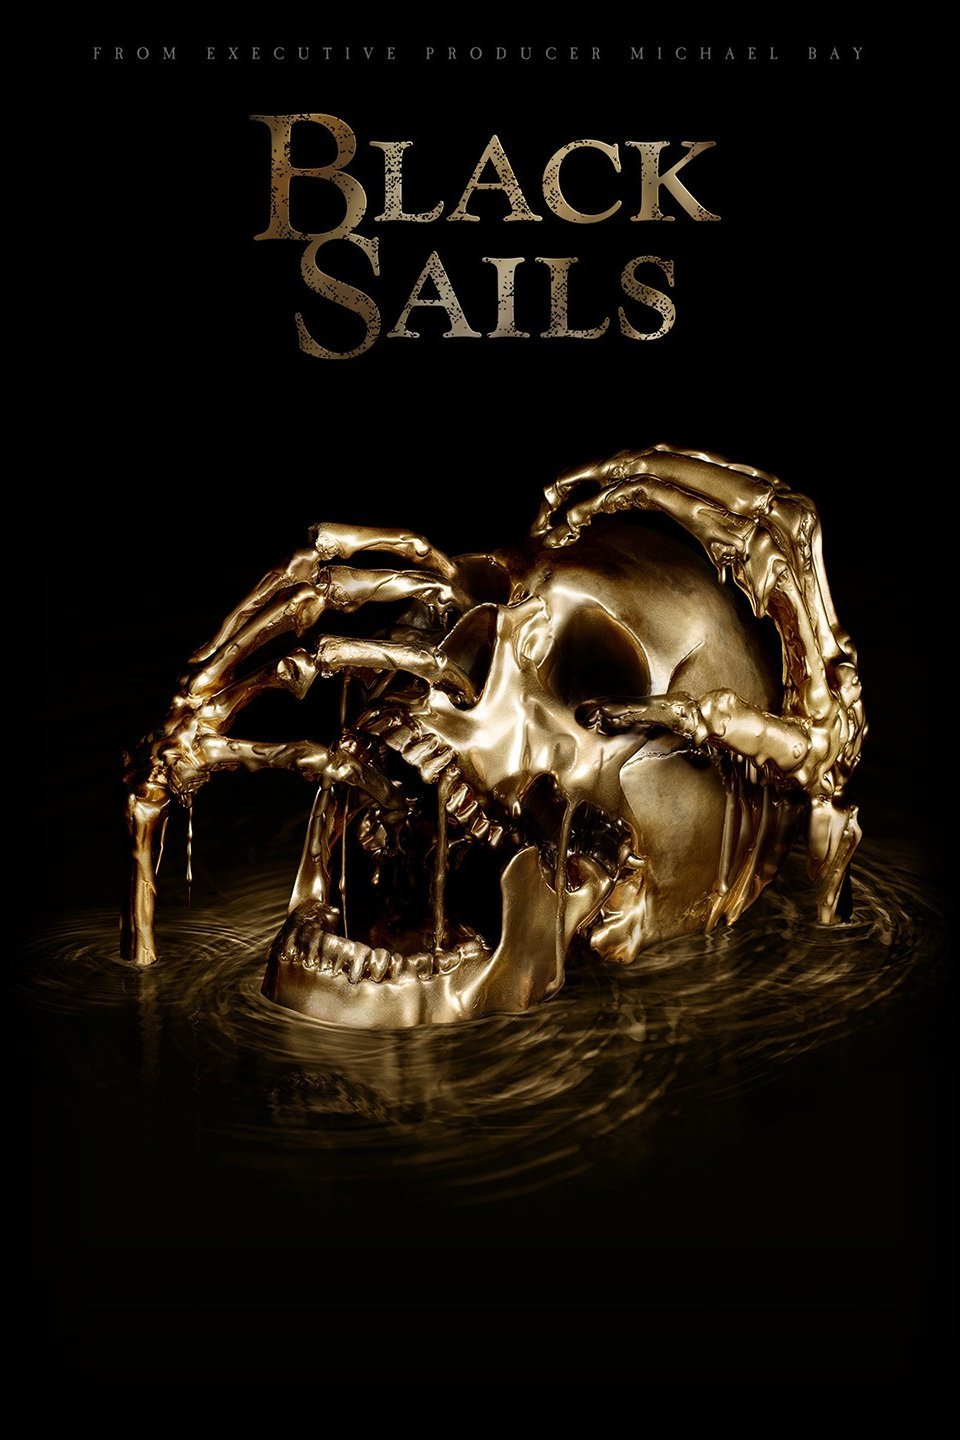 Black Sails Season 1 S01 720p BluRay x265 HEVC Complete Torrent